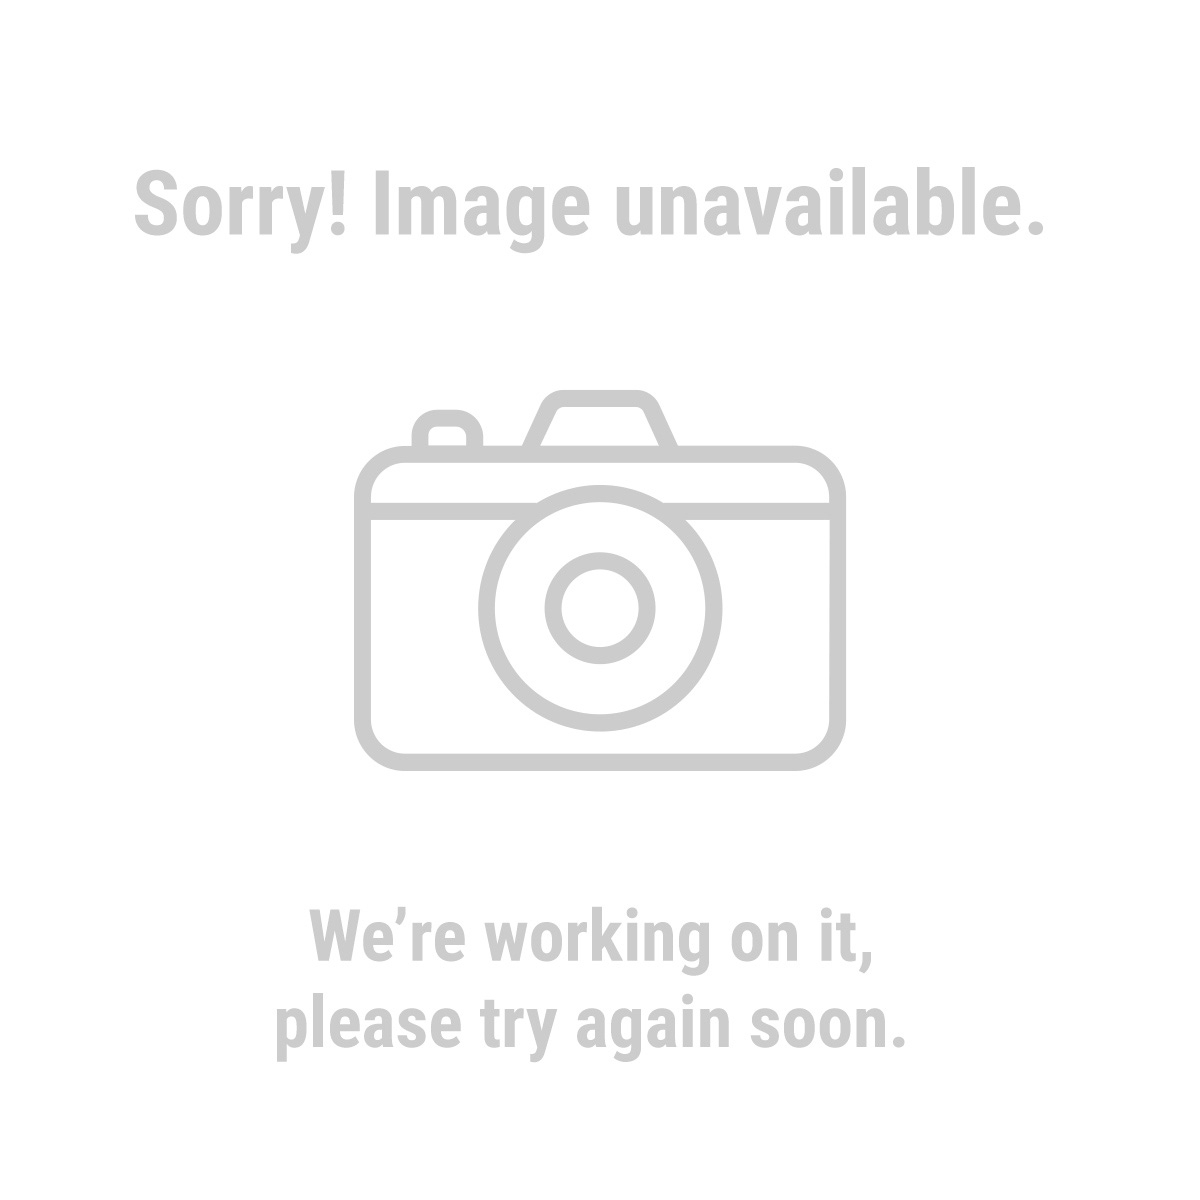 Warrior® 62361 1/4 in. - 1 in. Forstner Drill Bit Set With 3/8 in. Shanks 7 Pc